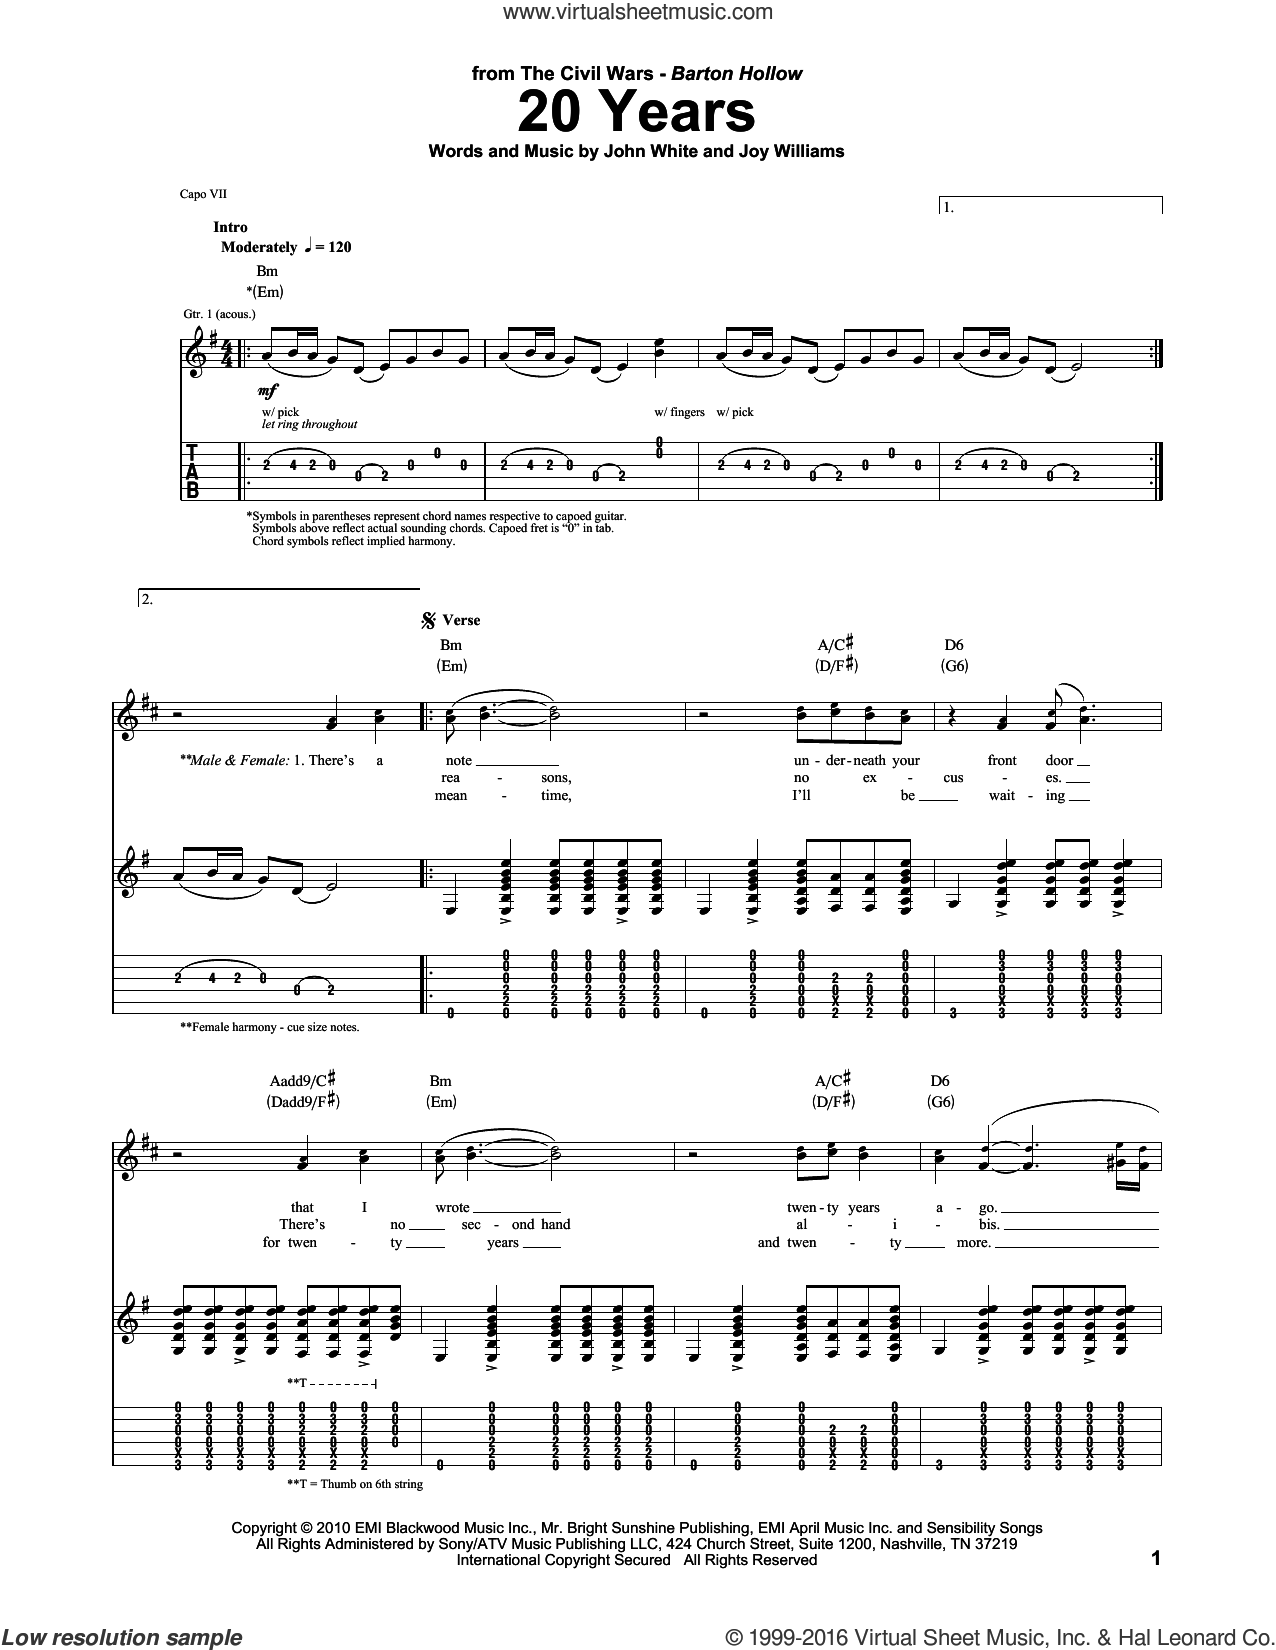 20 Years sheet music for guitar (tablature) by The Civil Wars, John White and Joy Williams, intermediate. Score Image Preview.